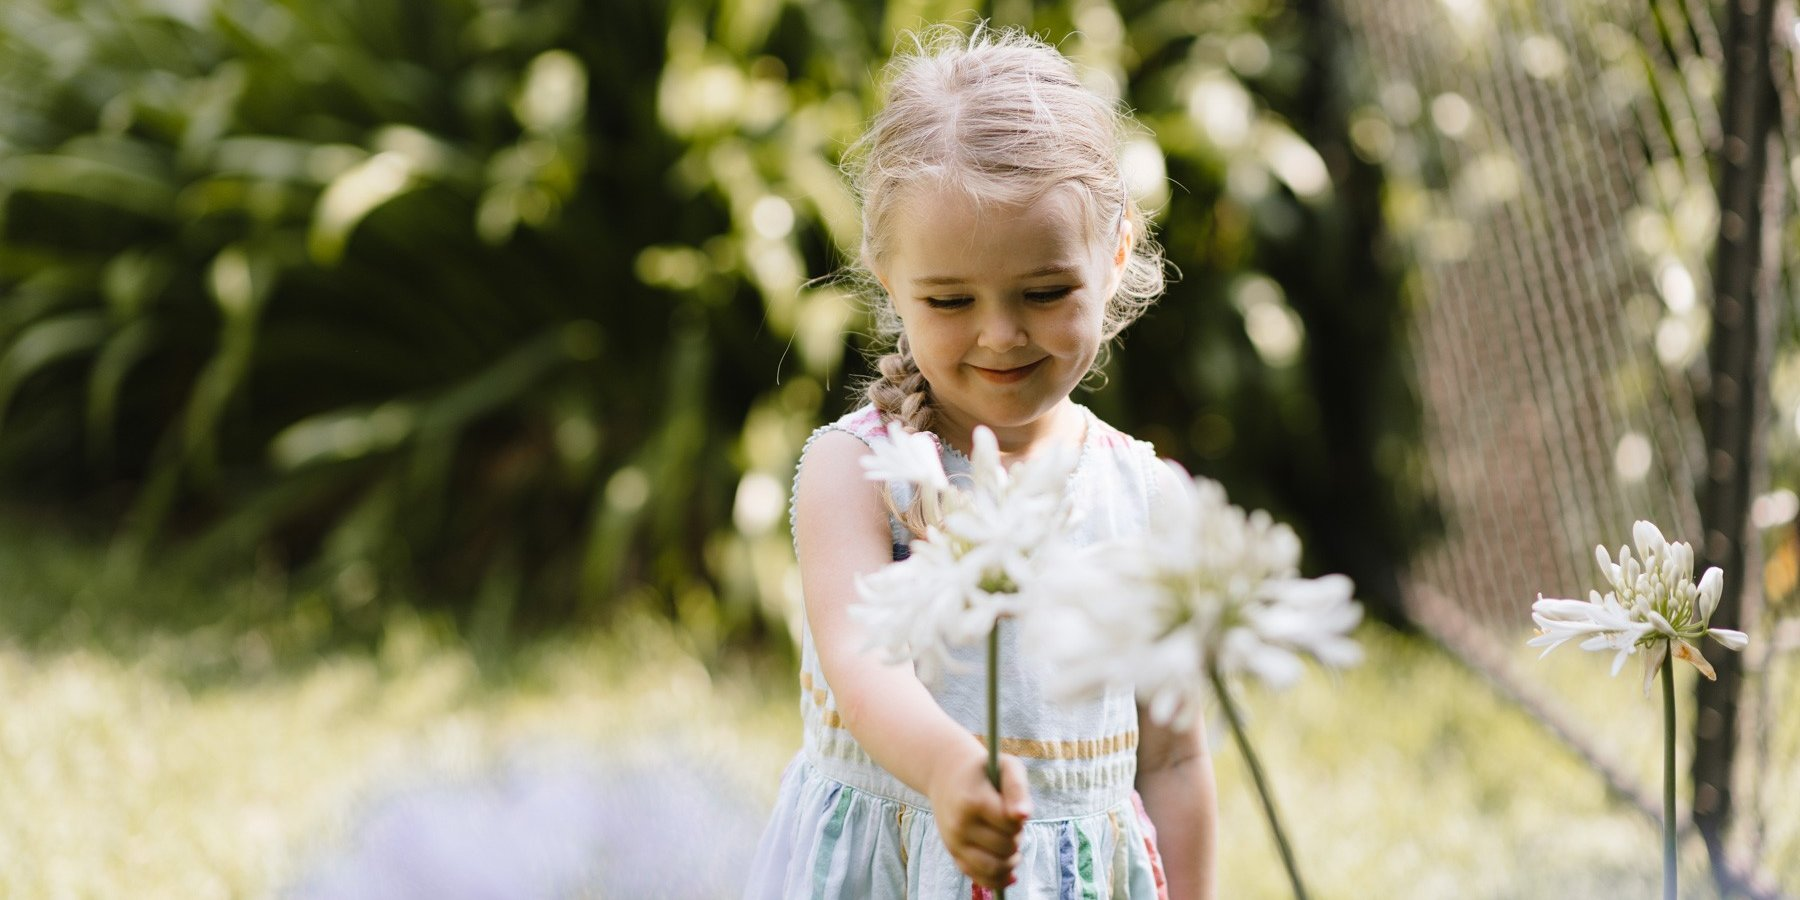 Wild-Romantic-Photography-Kids-Birthday-Portraits-Melbourne-26